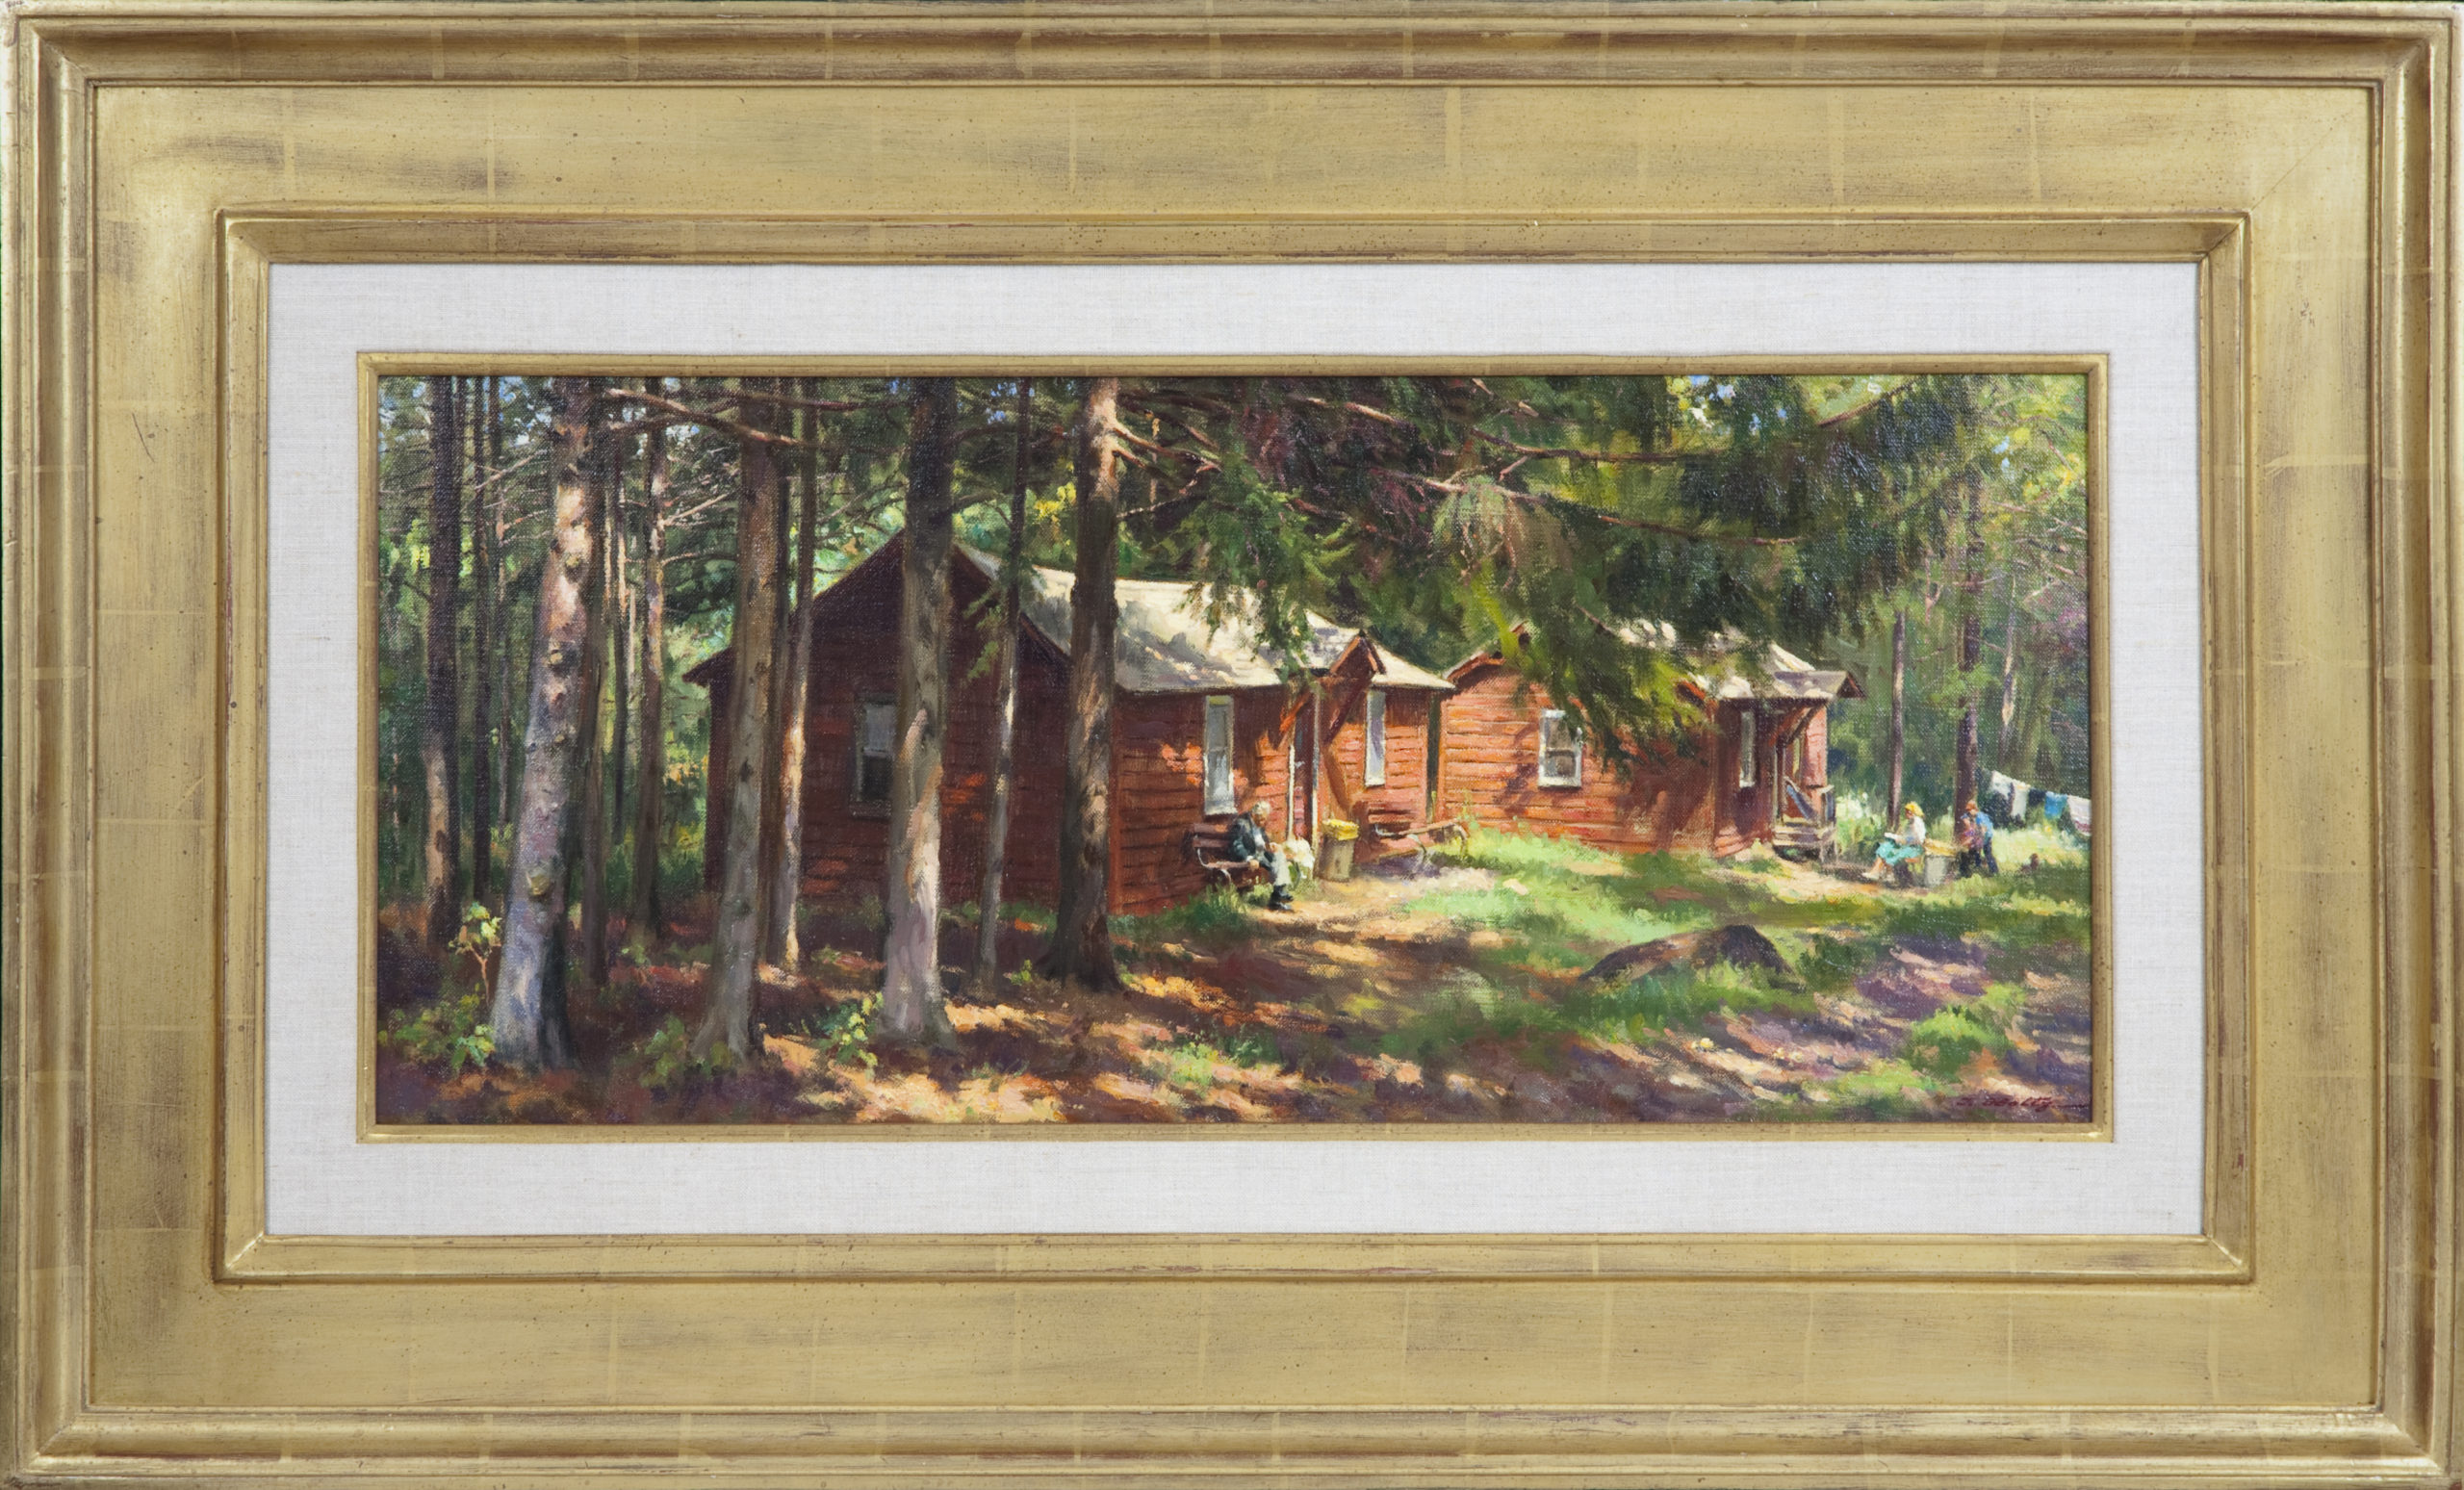 109 Bungalow in the Poconos 1979 - Oil on Canvas - 28 x 12 - Frame: 39.5 x 23.5 x 2